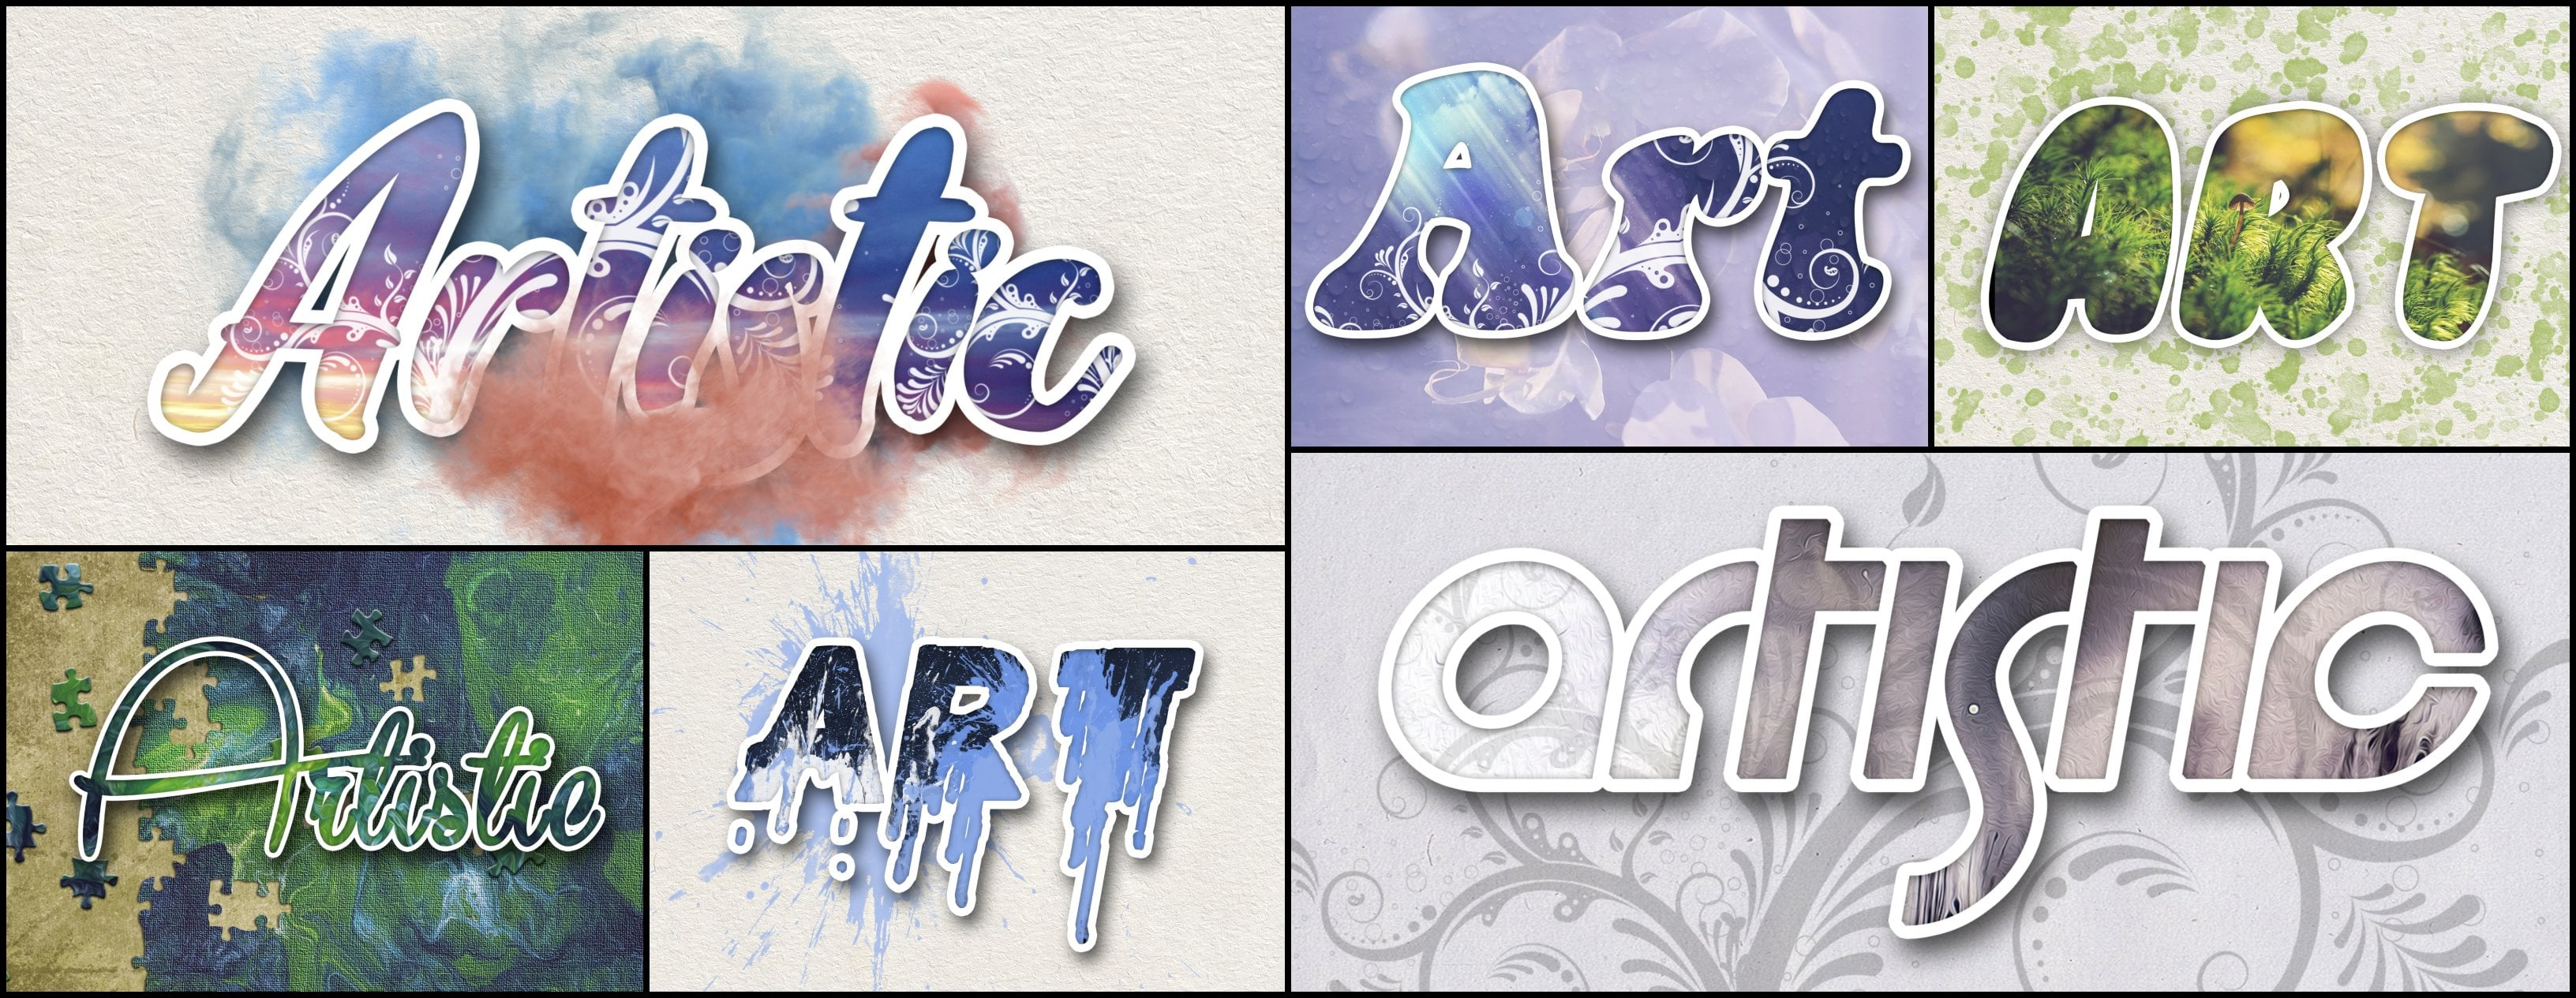 Photoshop Elements Text Effects - 40 Different Styles - 1 2